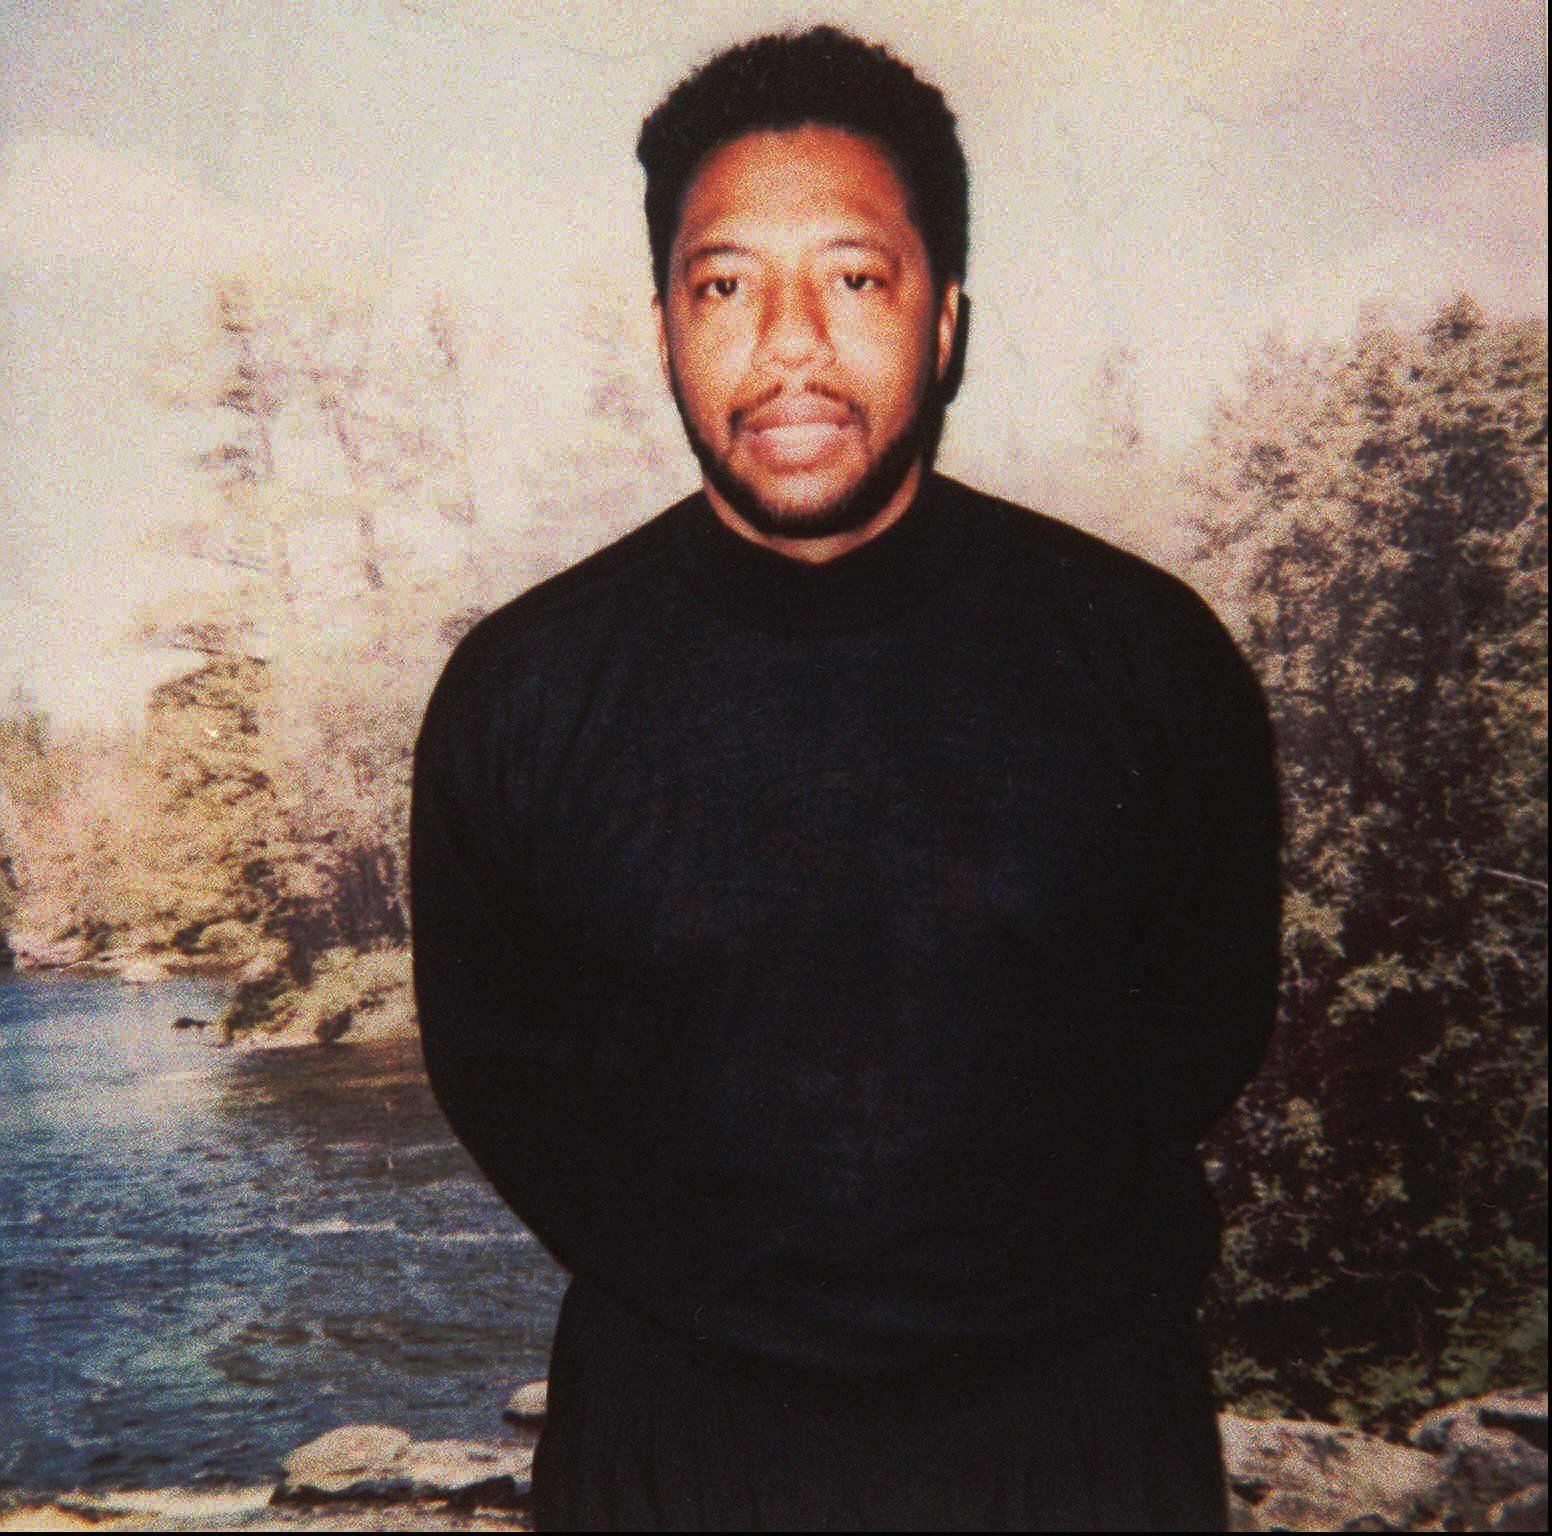 Larry hoover release date in Brisbane